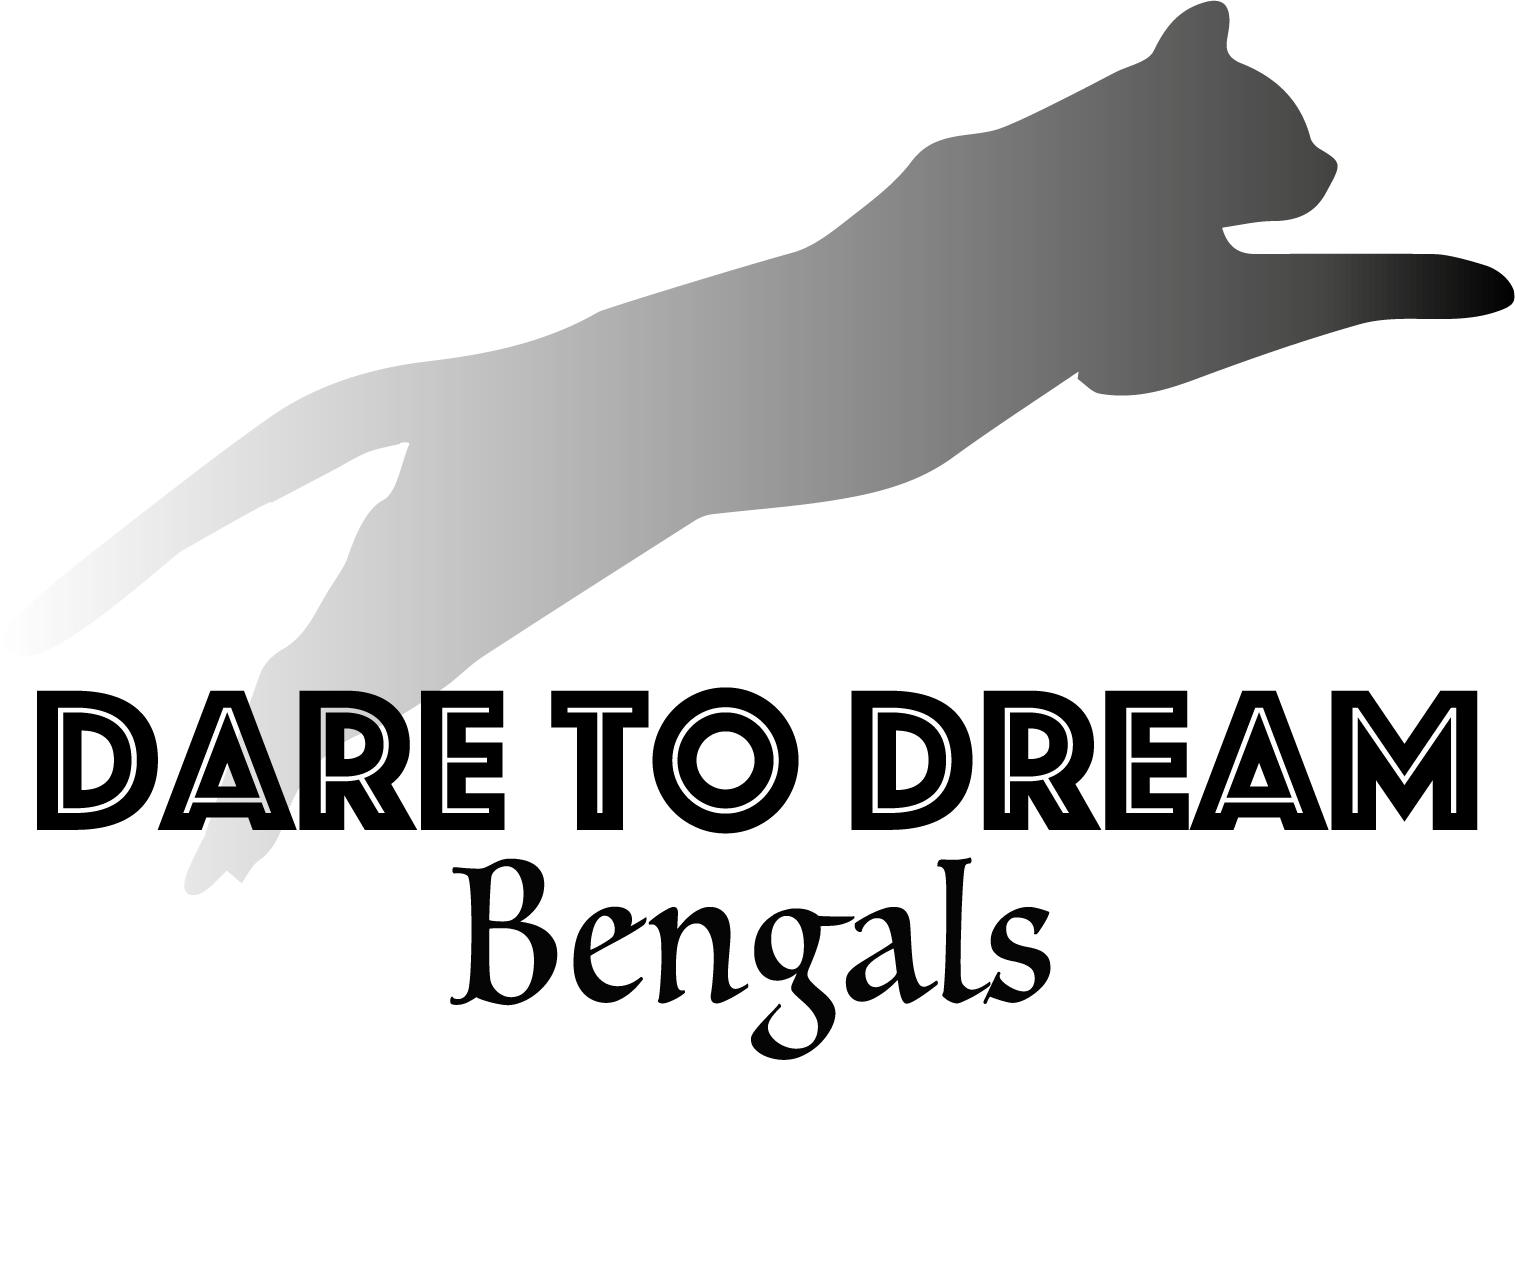 Dare to Dream Bengals